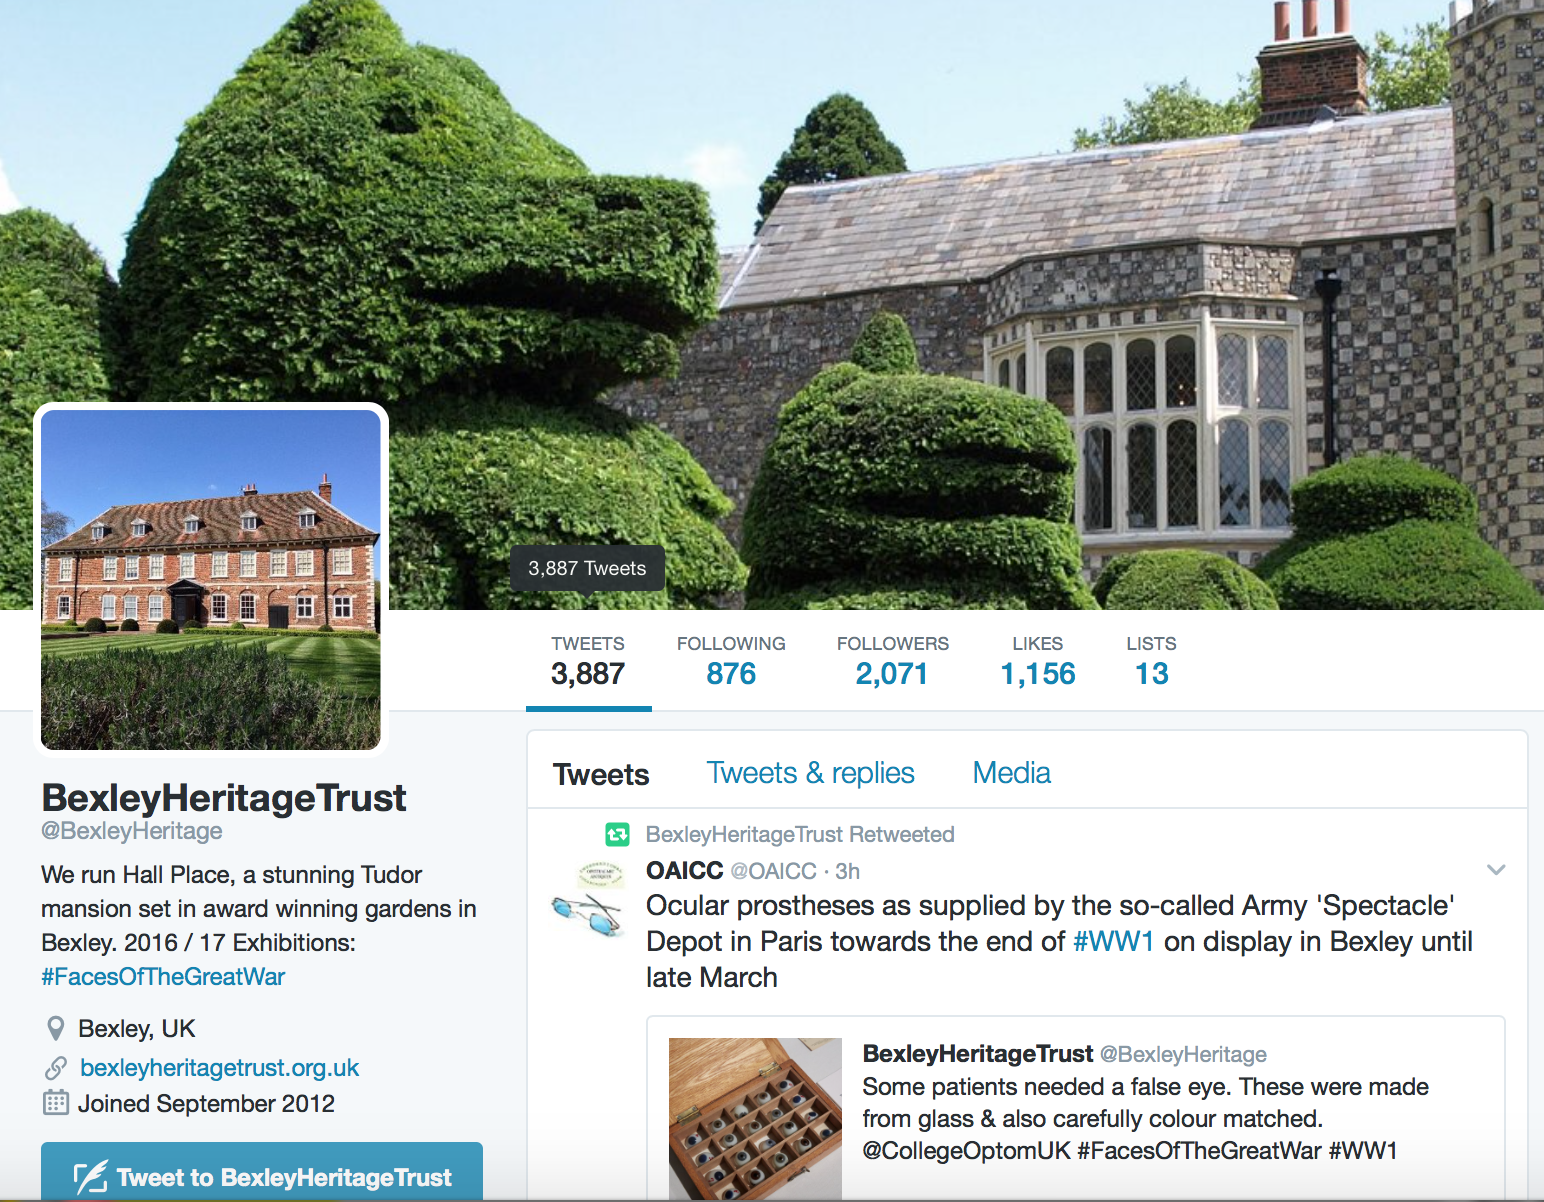 Twitter feed of Bexley Heritage Trust, @BexleyHeritage, featuring exhibitions, events, and more.